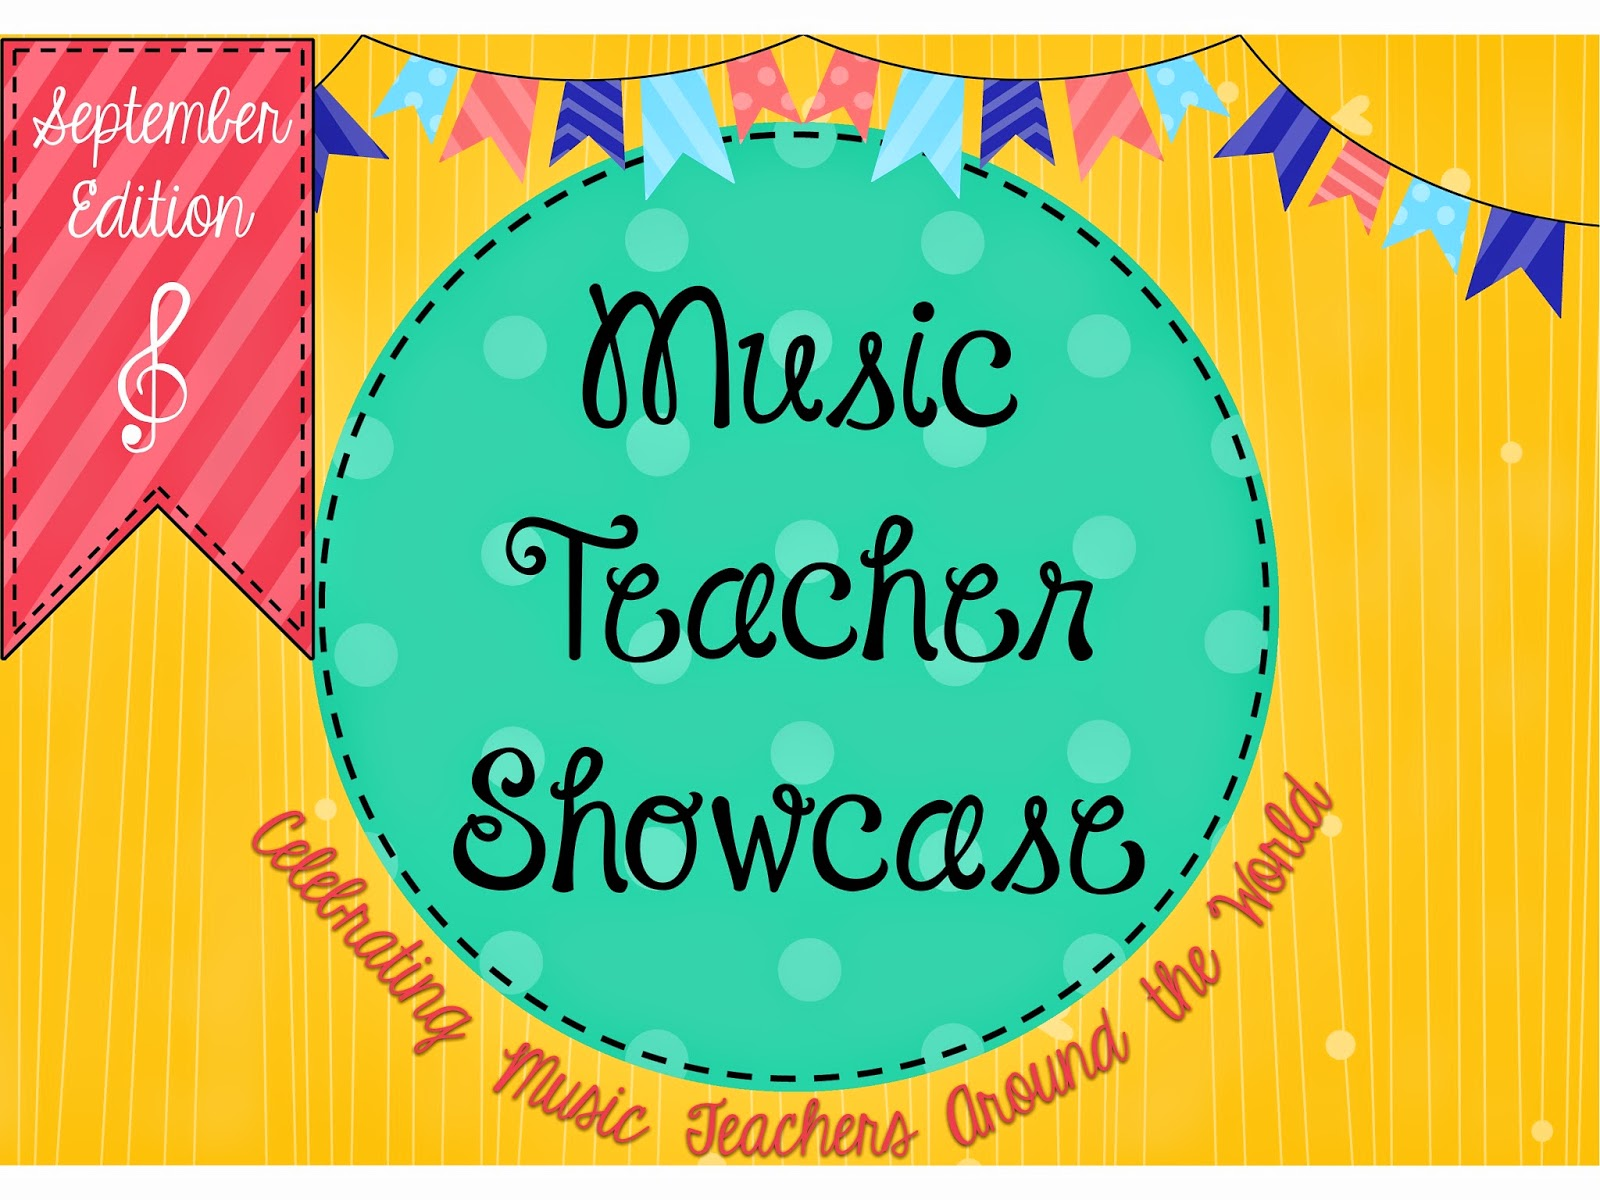 Music Teacher Showcase: September Edition